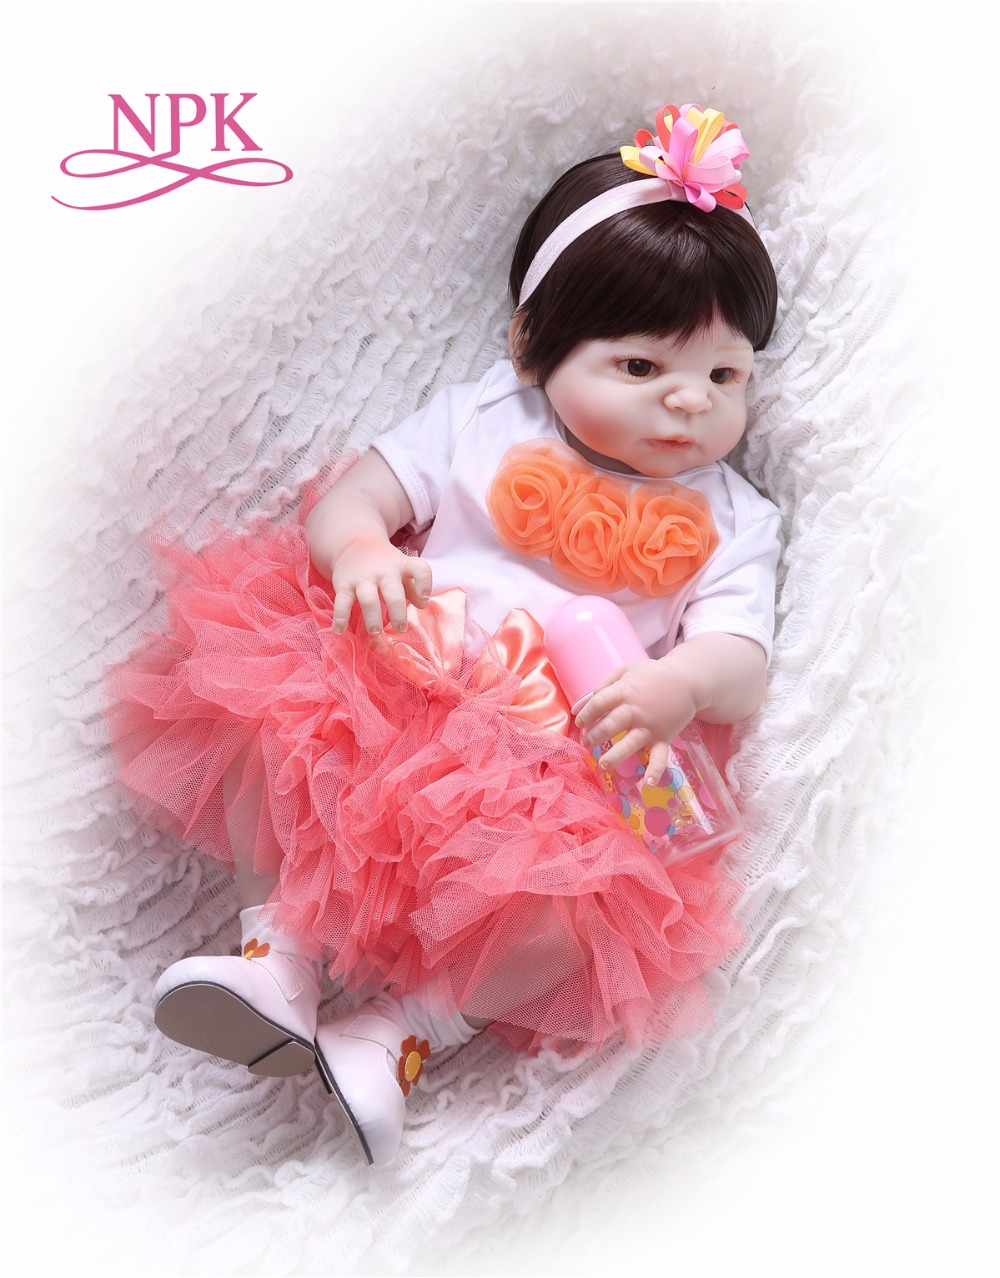 все цены на NPK 23inch 57cm bebe Reborn Baby Dolls full Silicone Reborn Bebe Doll Vinyl Toys gifts cute gift For Girls and boys pink heart онлайн